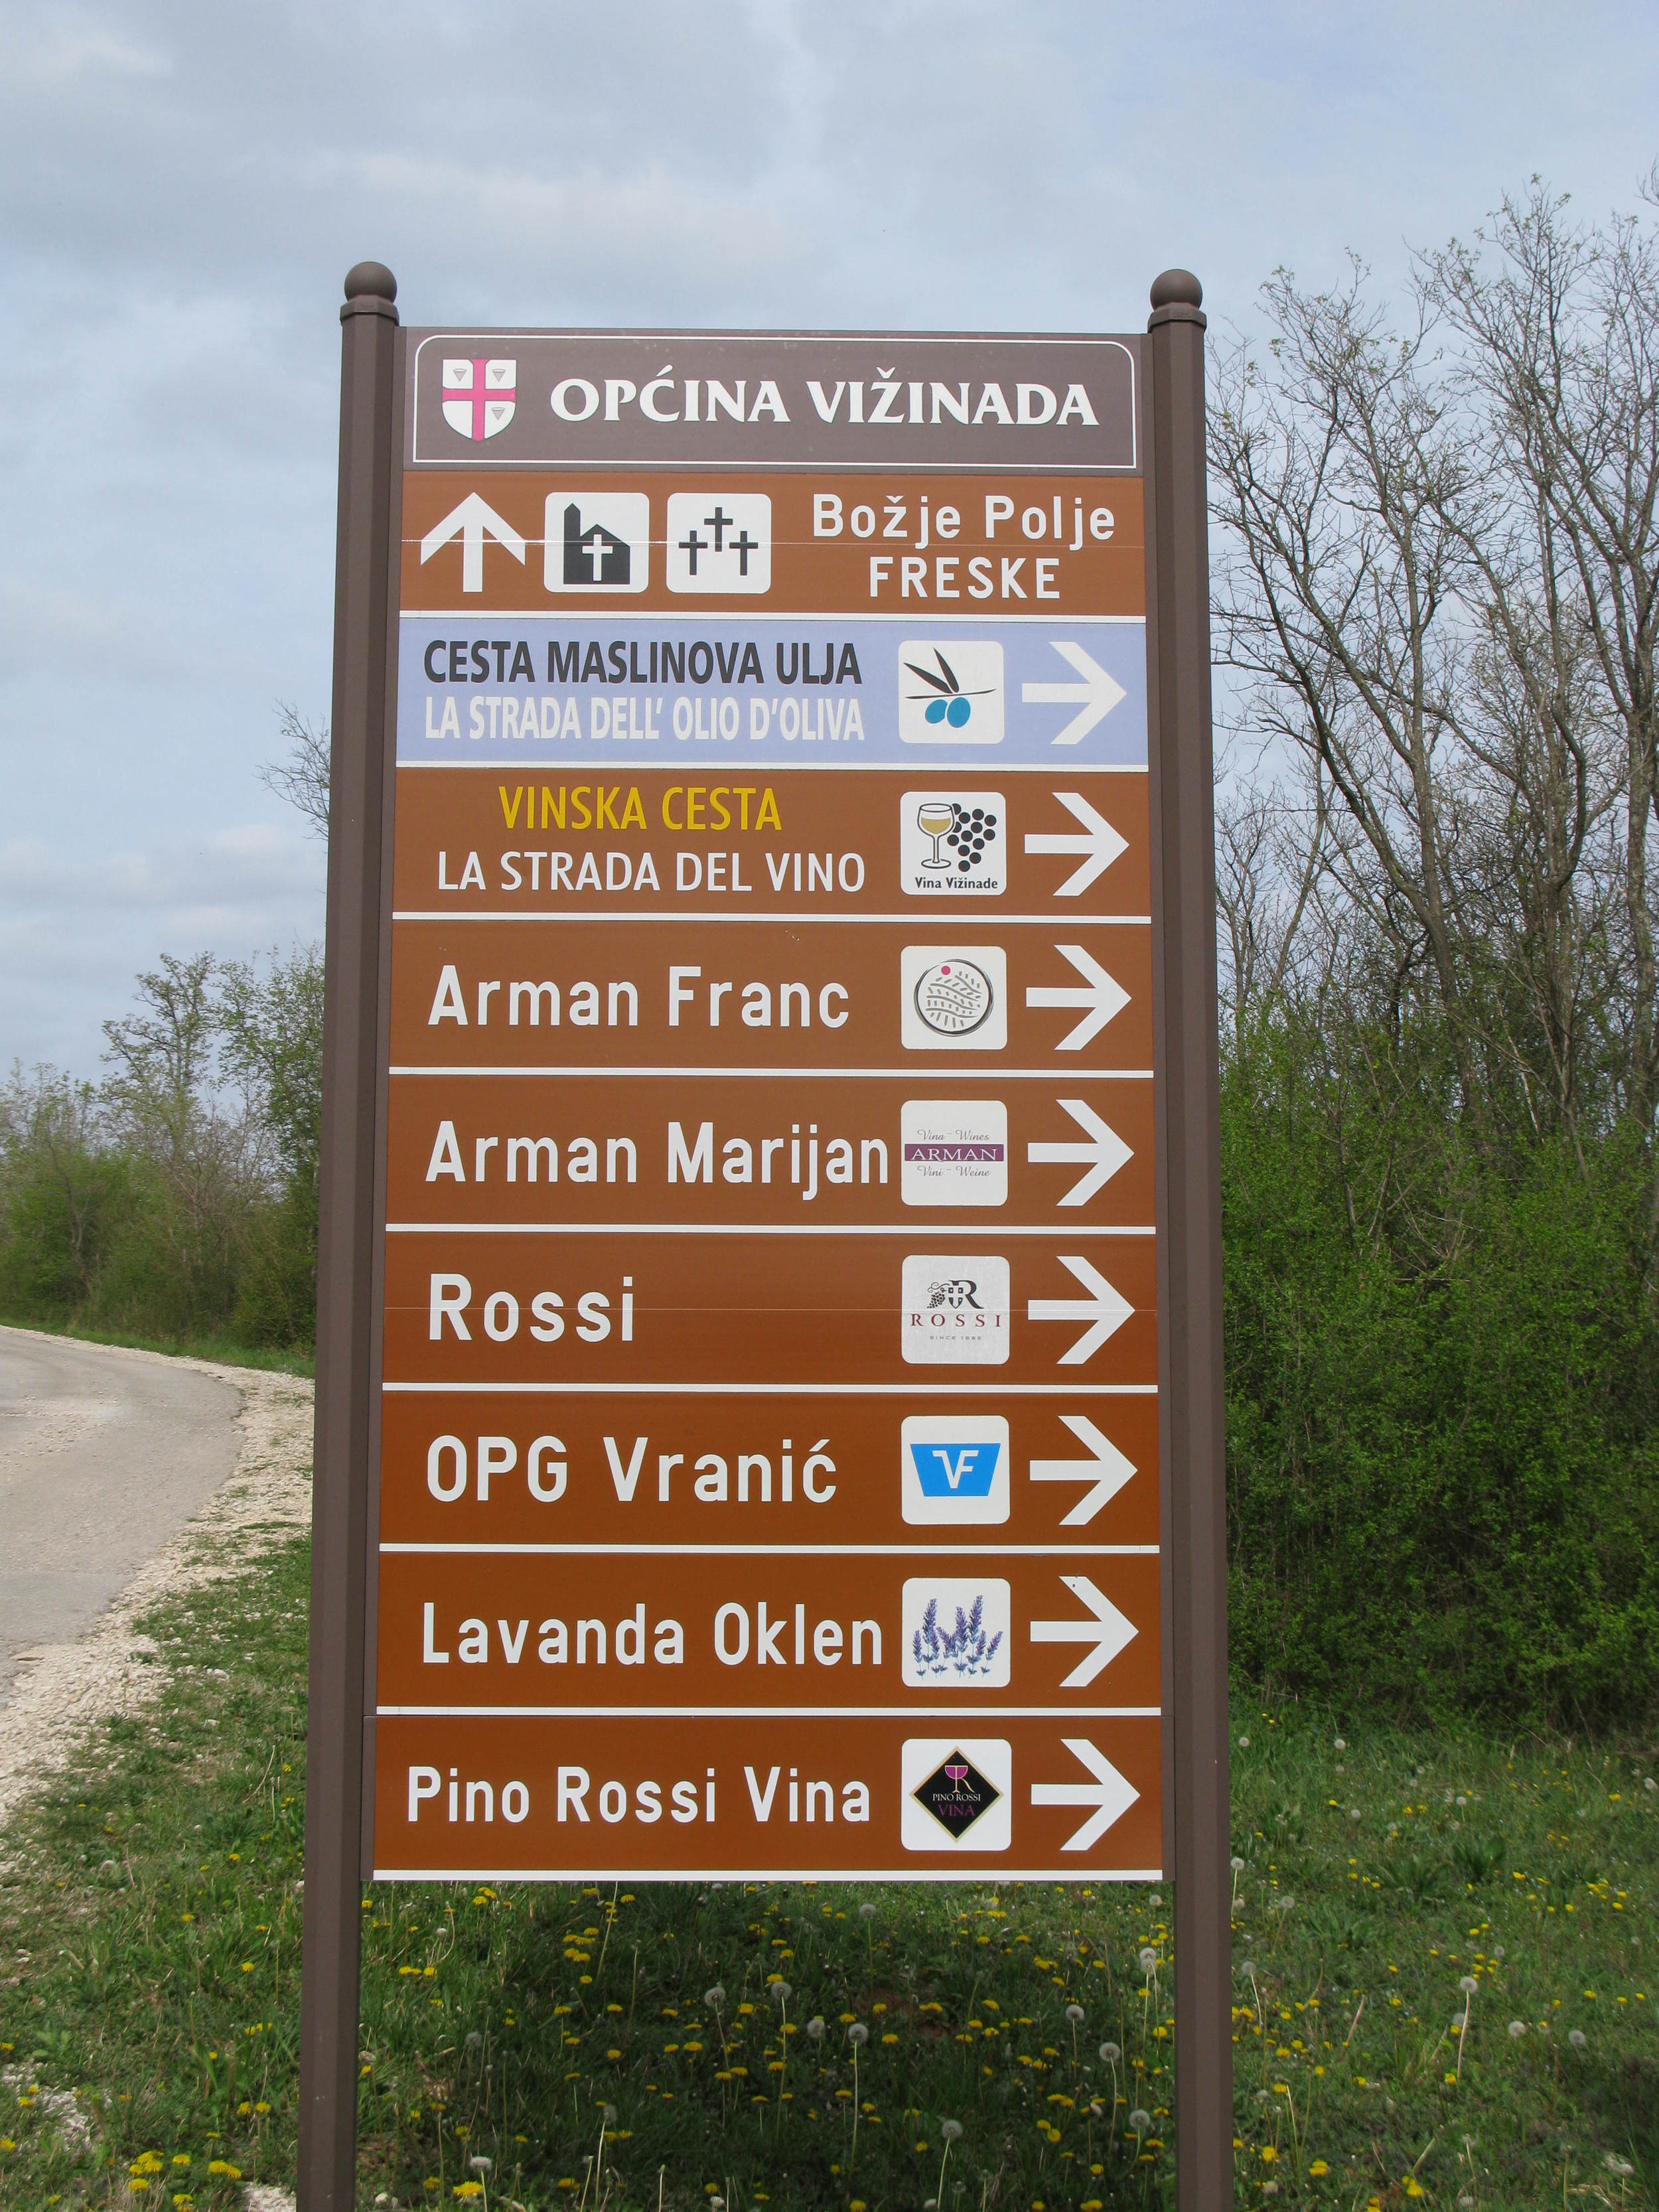 Wineries on the wine road, Vinska Cesta, are well signposted